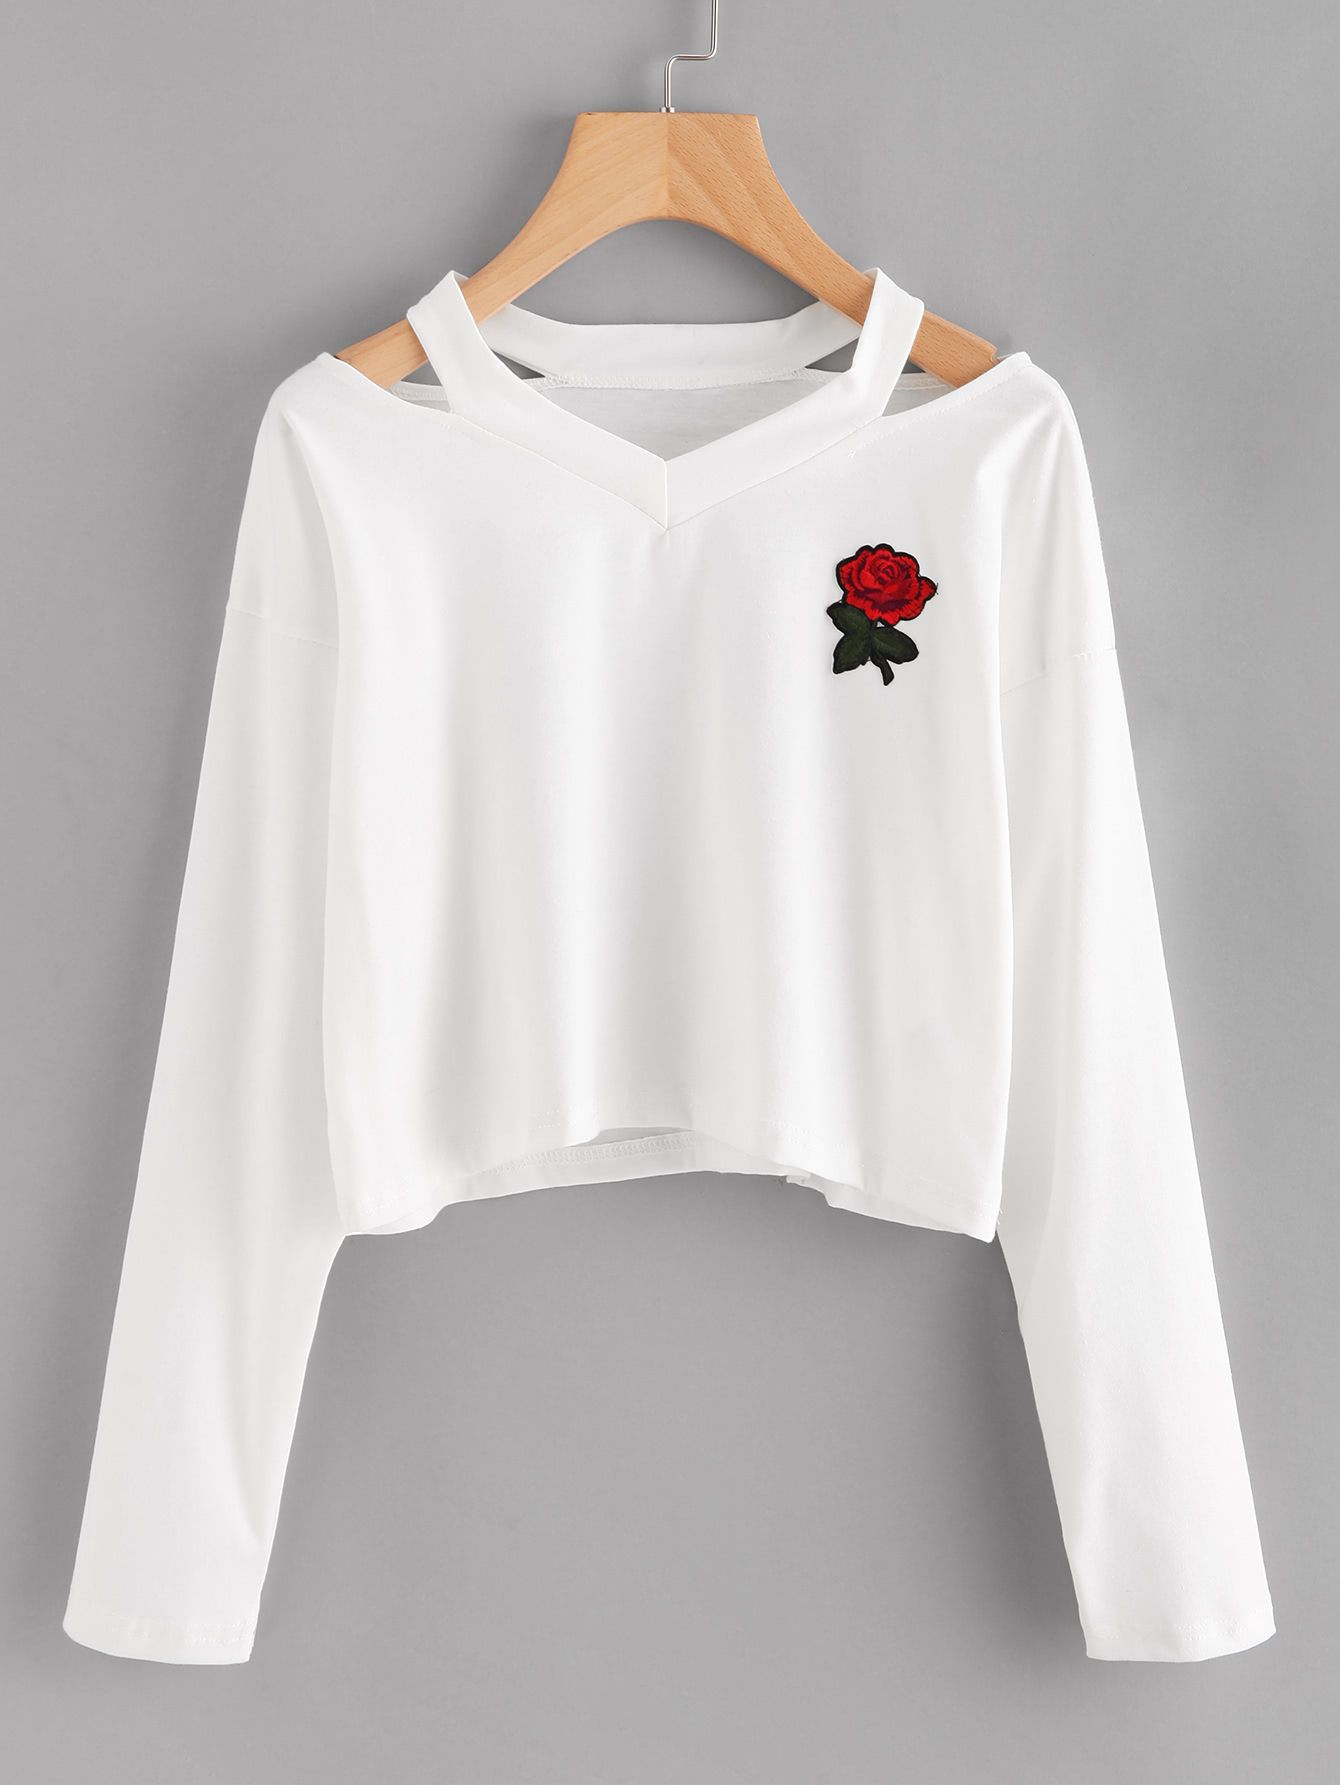 4f13282810 Shop Cut Out Neck Rose Patch Tee online. SheIn offers Cut Out Neck Rose  Patch Tee & more to fit your fashionable needs.